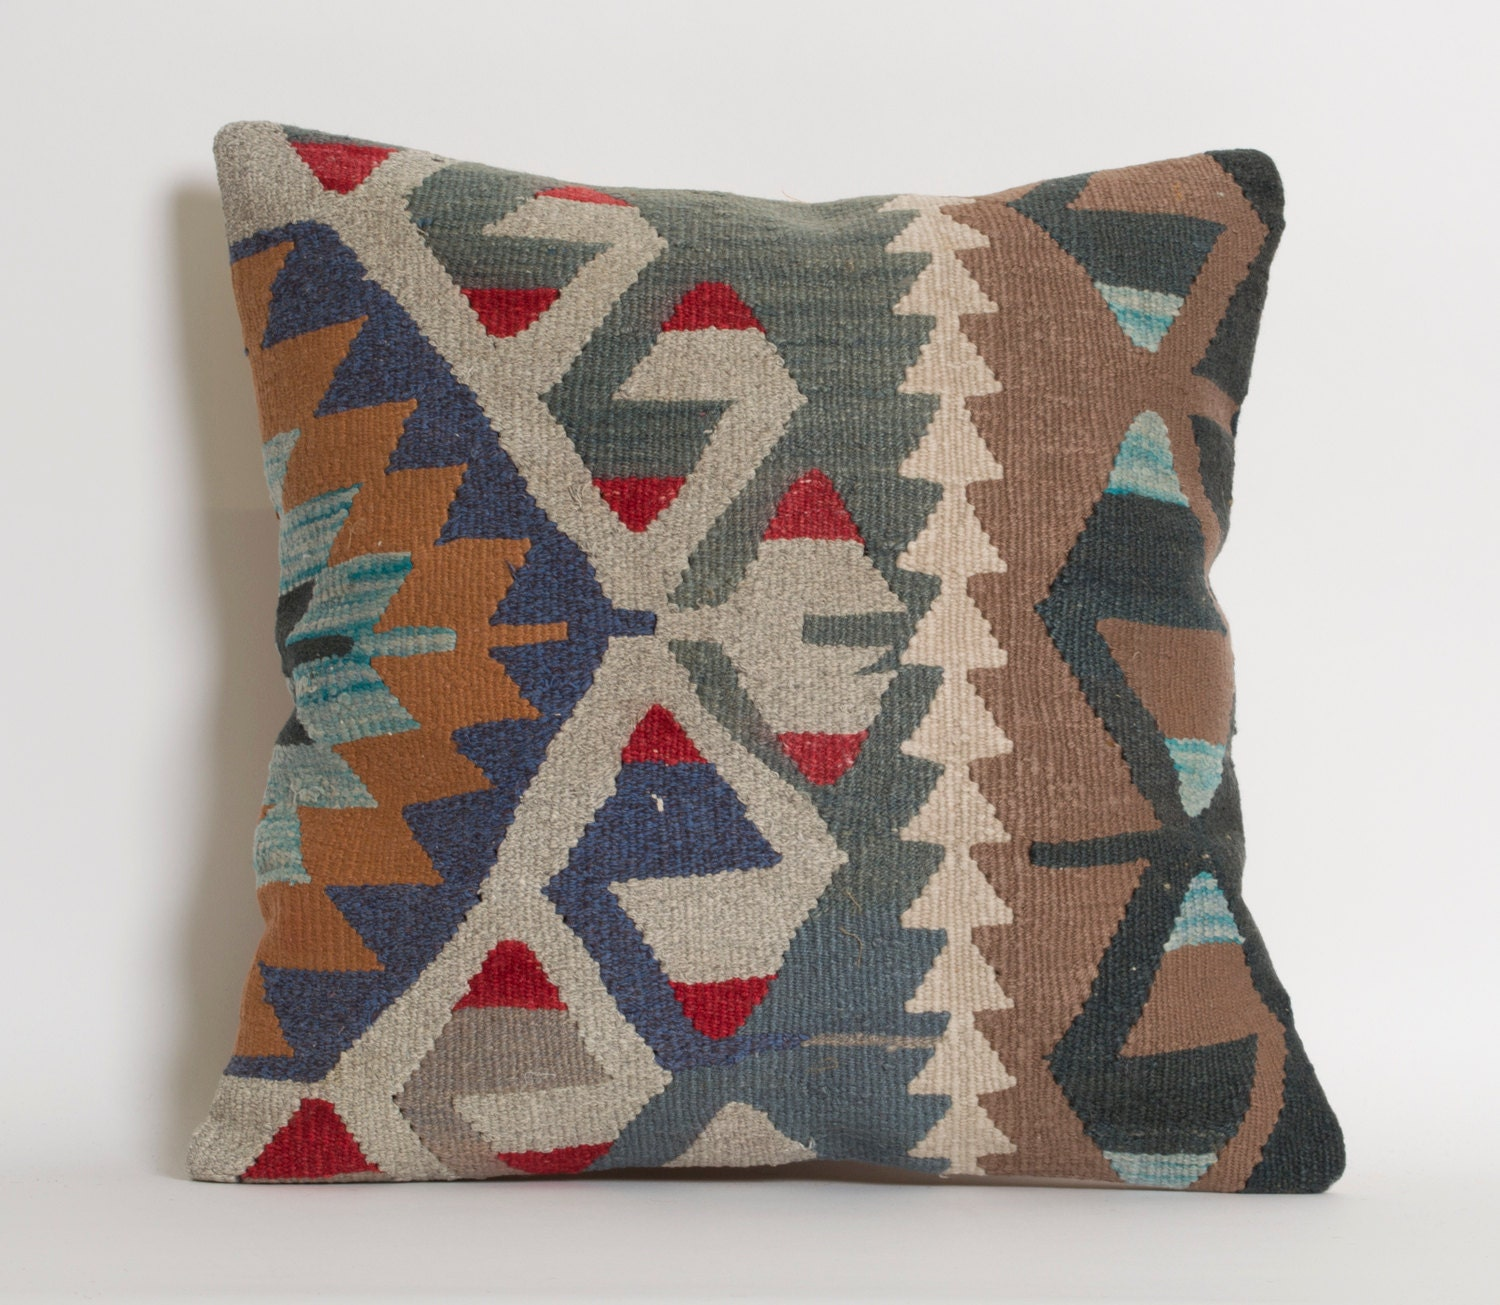 Decorative Pillows Kilim : Decorative Kilim Pillows Bohemian Home Decor Handwoven by pillowme